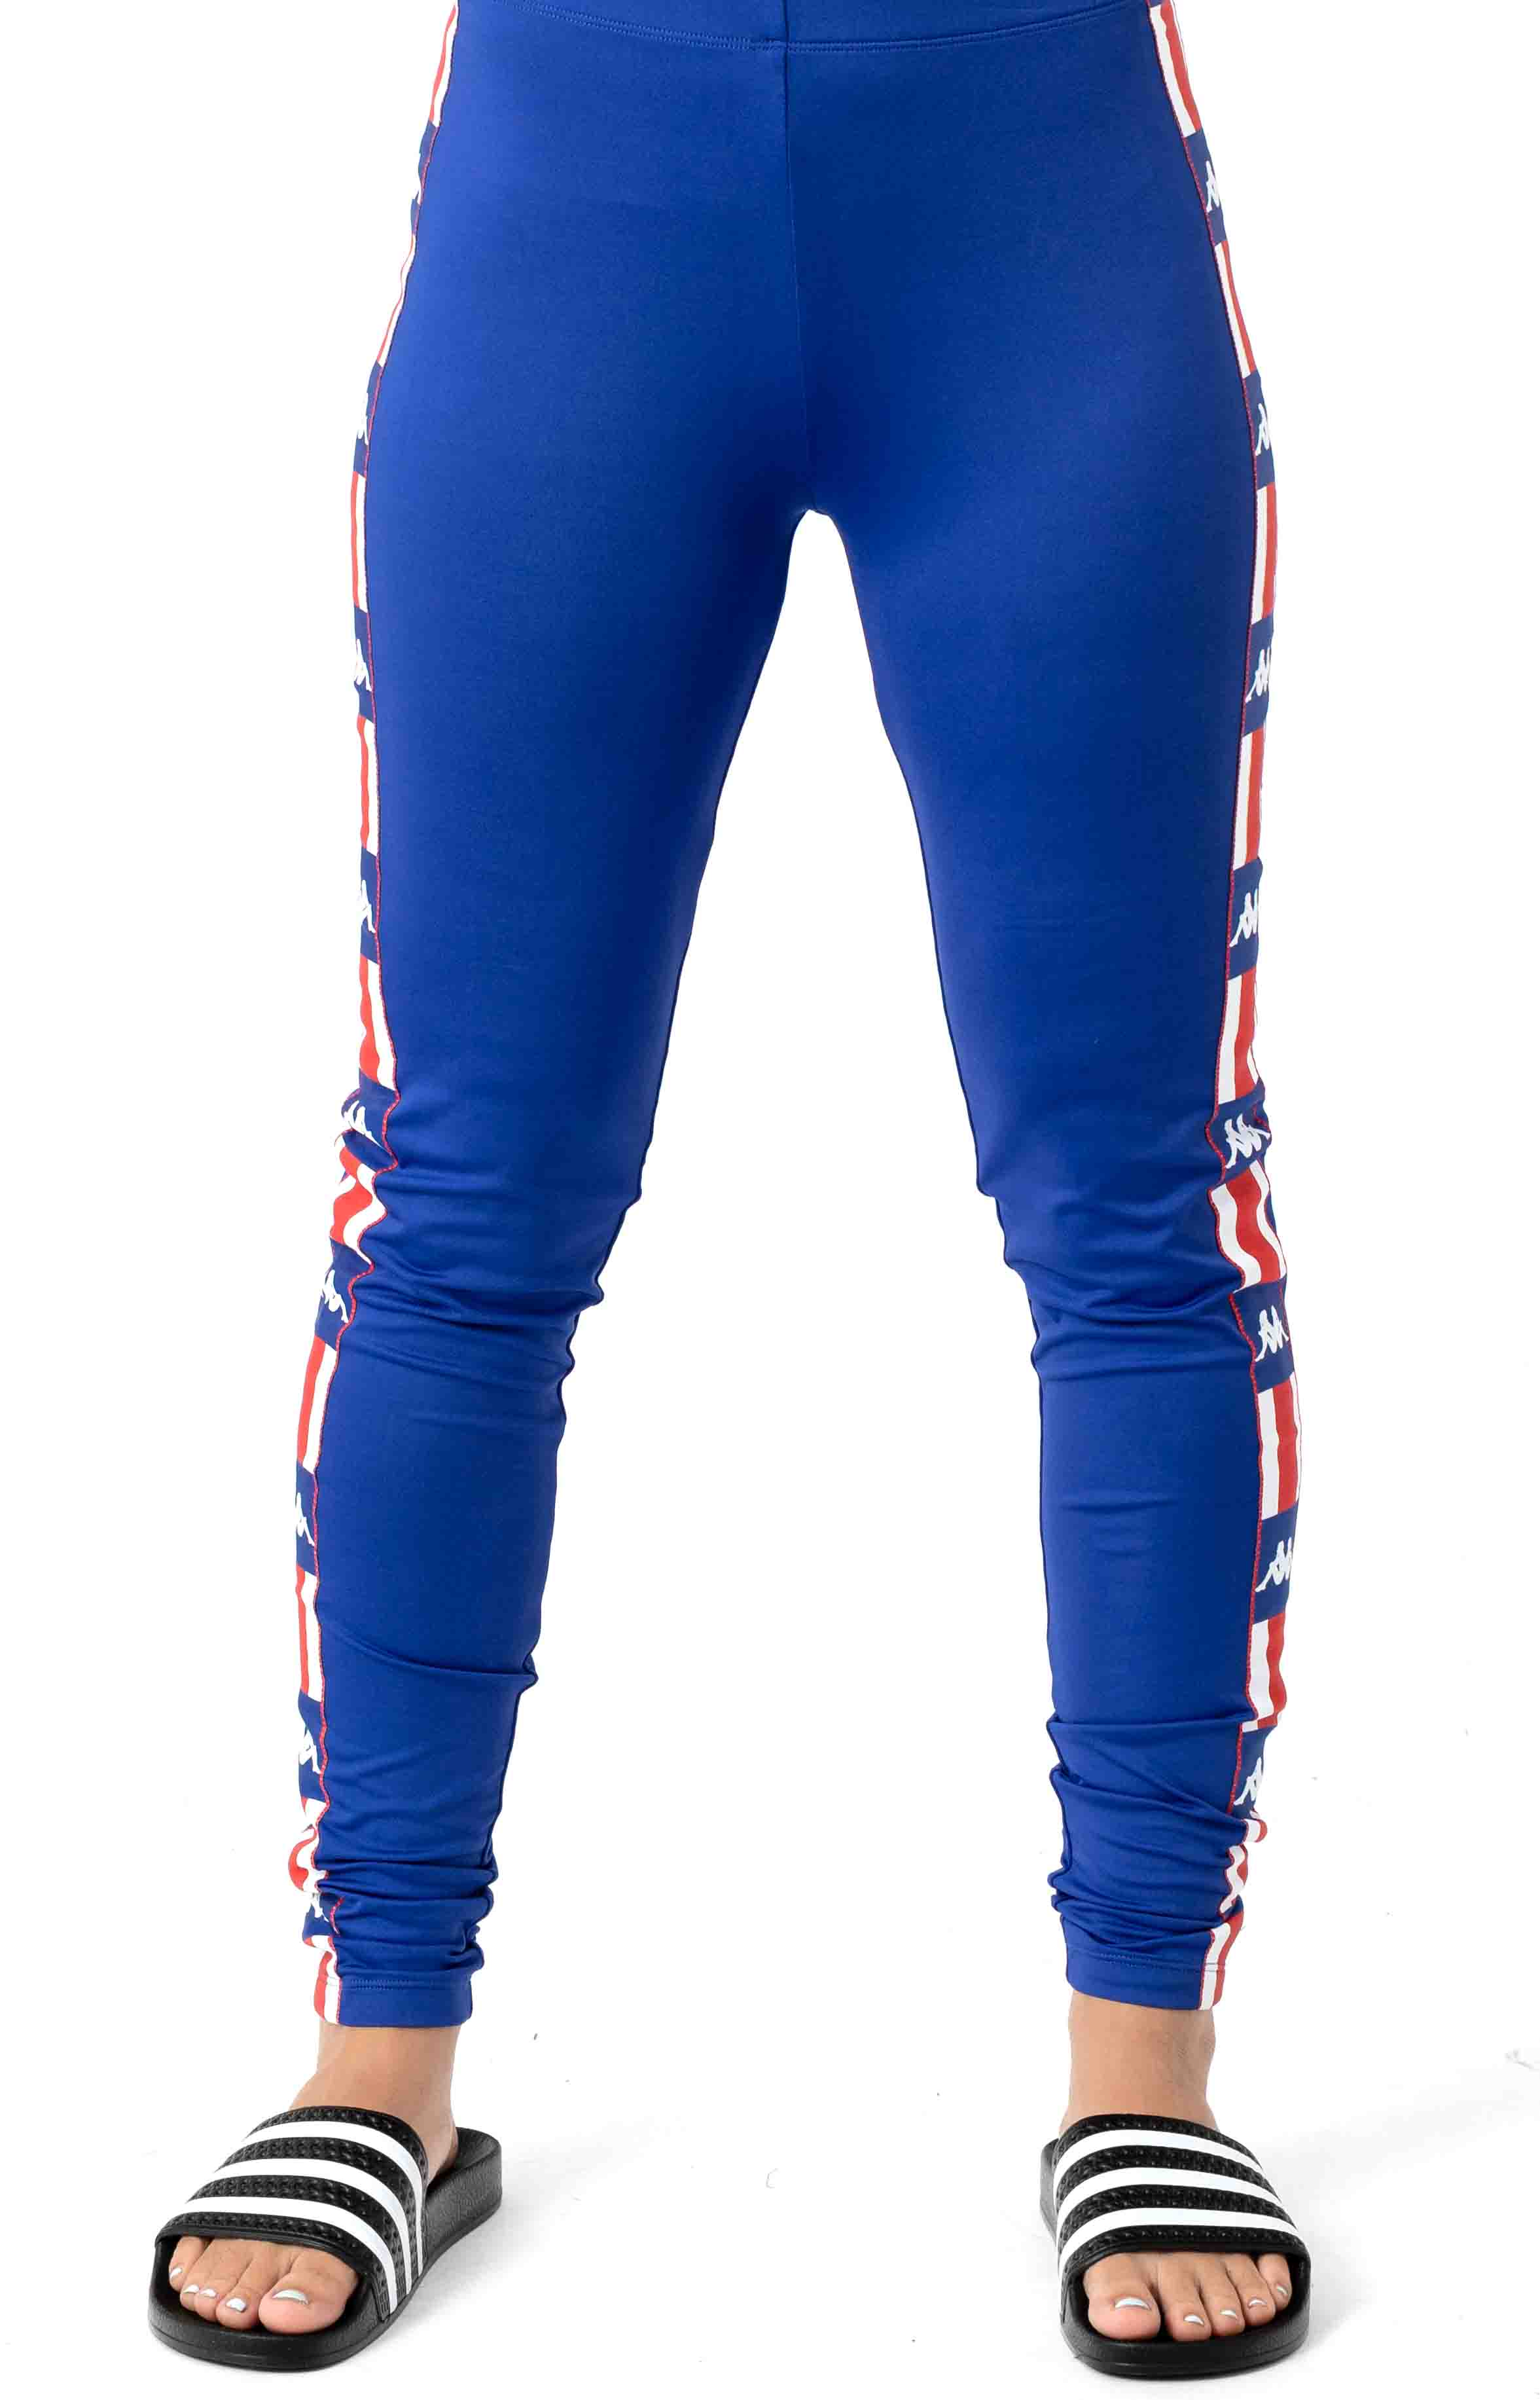 Authentic LA Baward Leggings - Blue/Blue 2